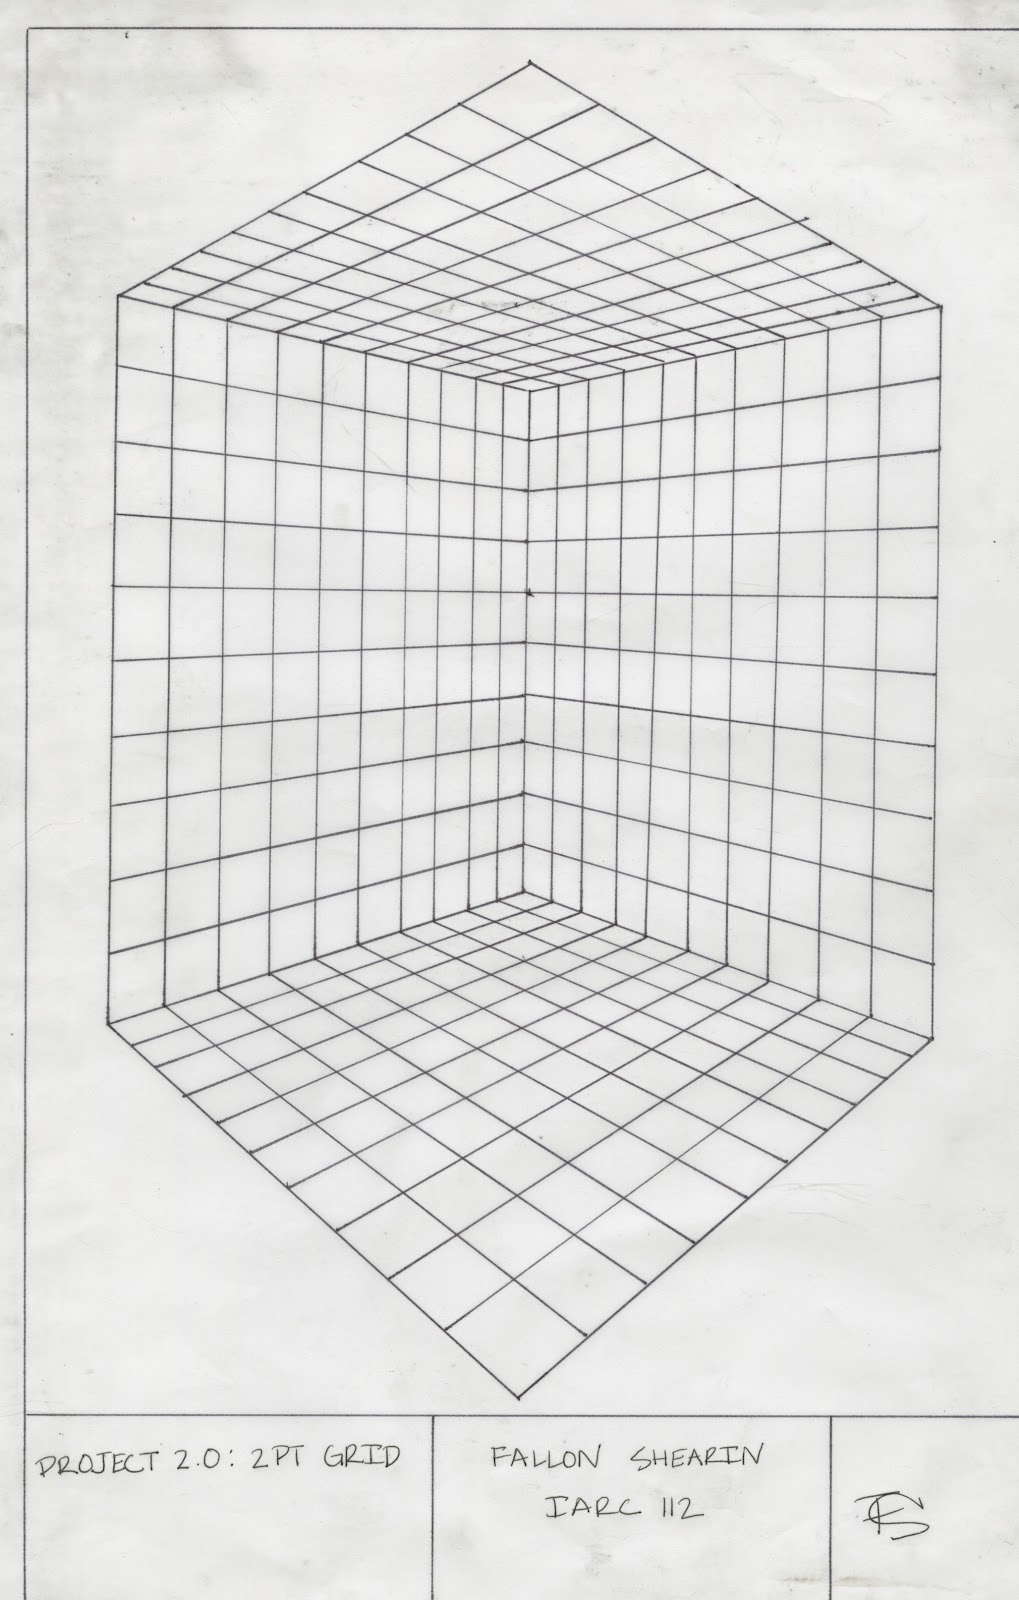 Fallon Shearin Design Project 2 0 Perspective Grid